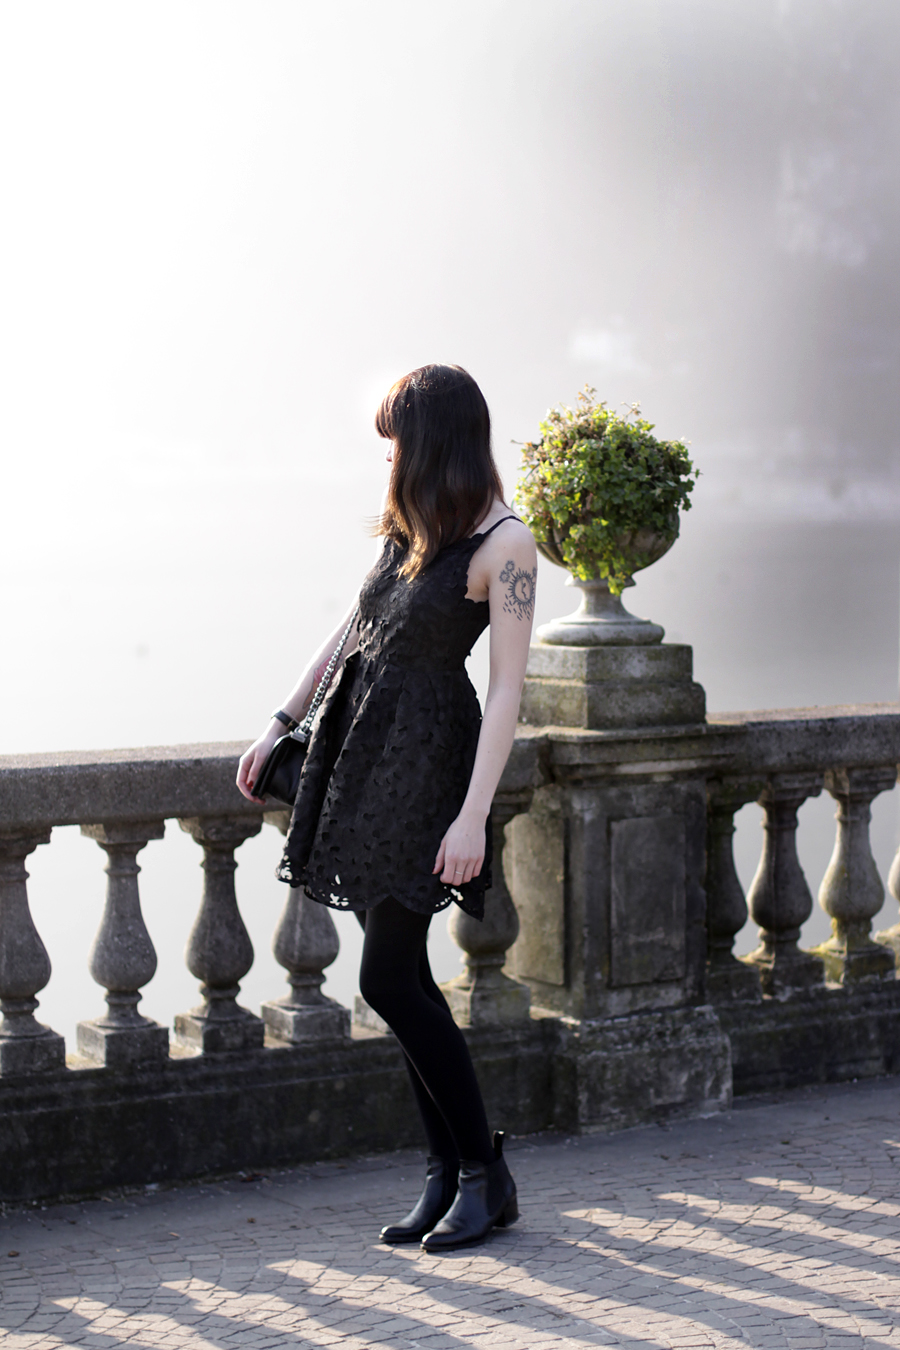 riva del garda garda lake lago di garda italia italy outfit chicwish dress lace black chanel le boy girl bangs brunette travel travelblogger fashionblogger outfit ootd lookbook fashion girl german ricarda schernus blog blogger hannover berlin 1